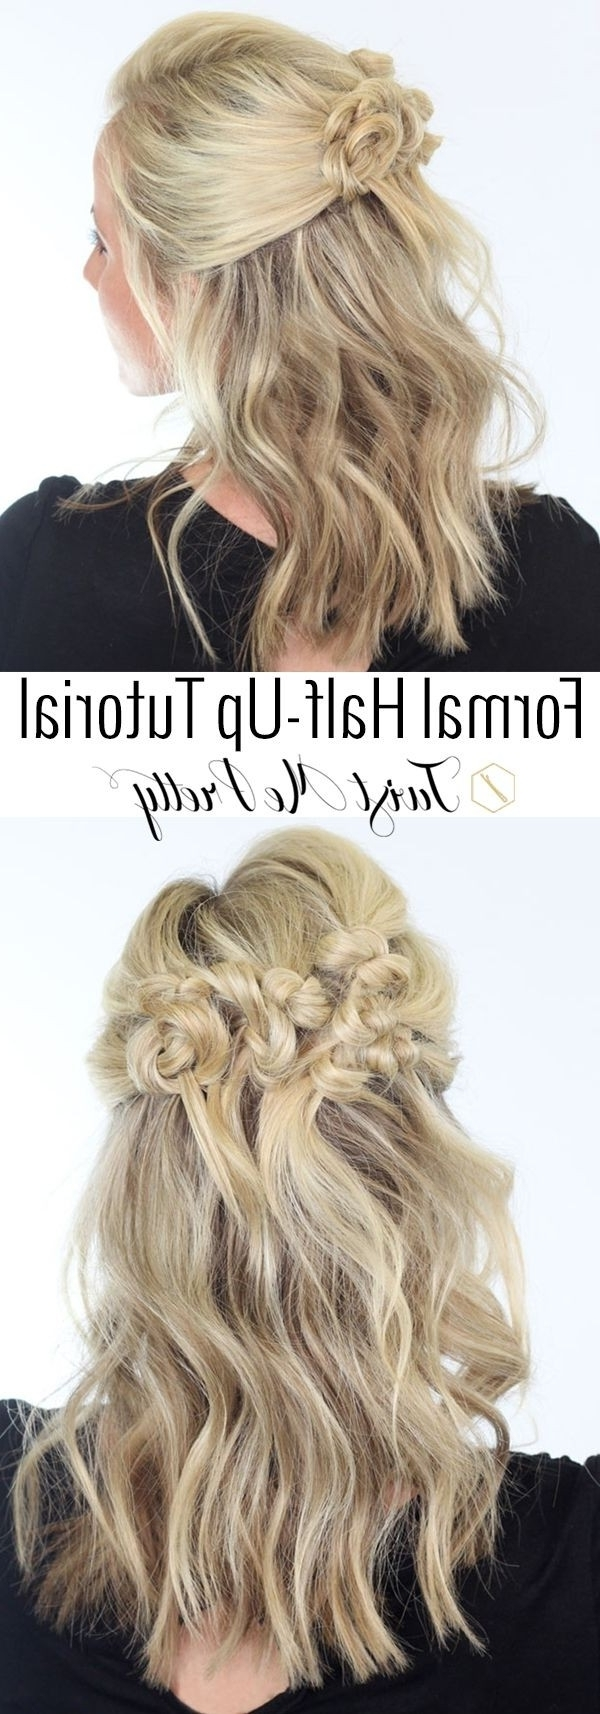 20 Great Hairstyles For Medium Length Hair 2016 – Pretty Designs Within Half Updos For Shoulder Length Hair (View 11 of 15)